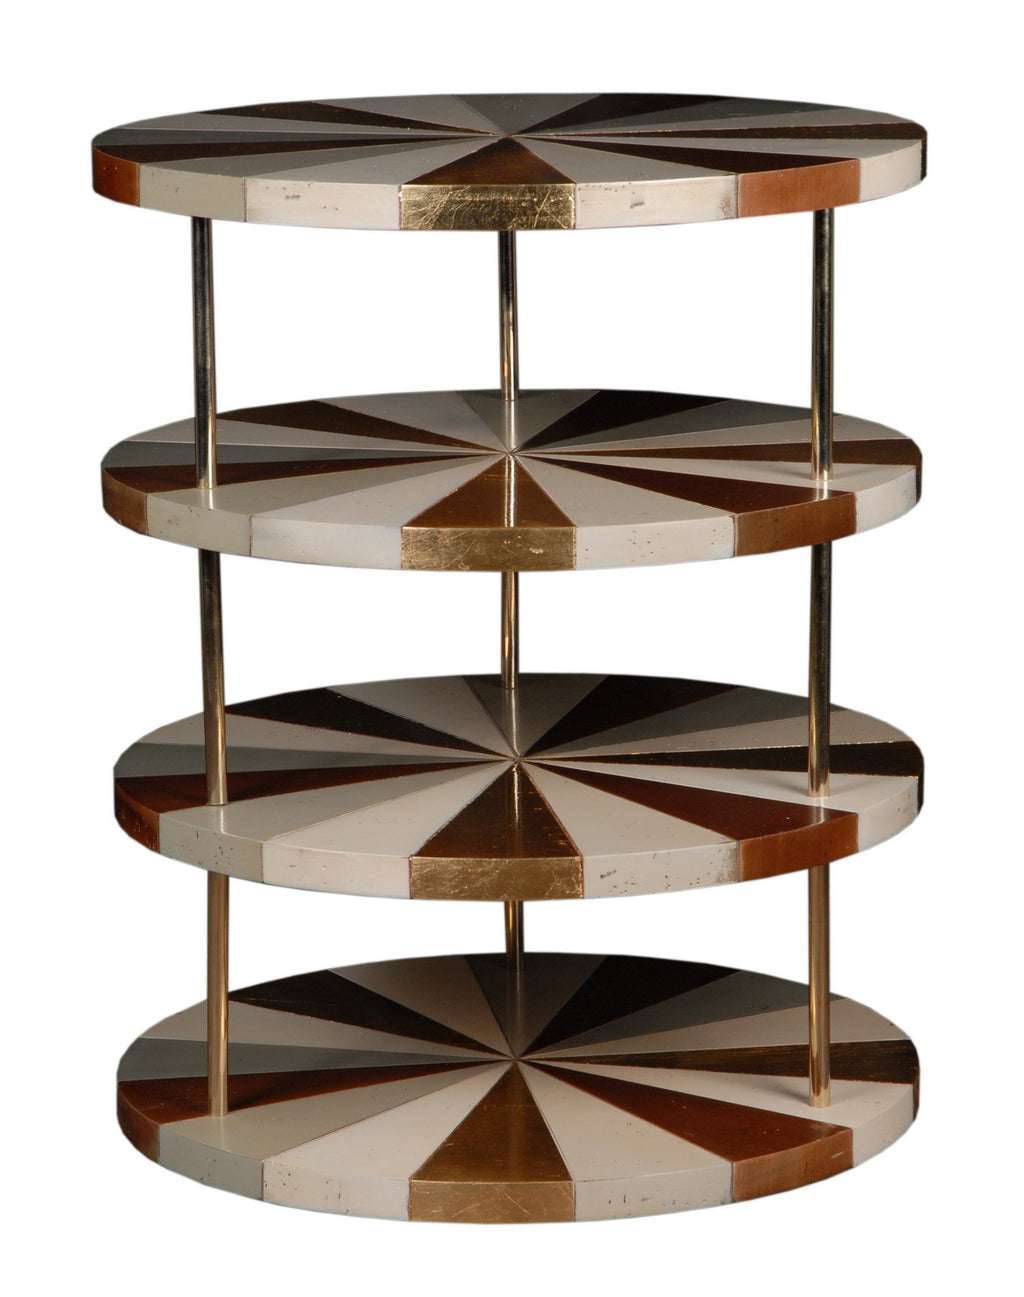 lamp table 4 layers storage multi-color